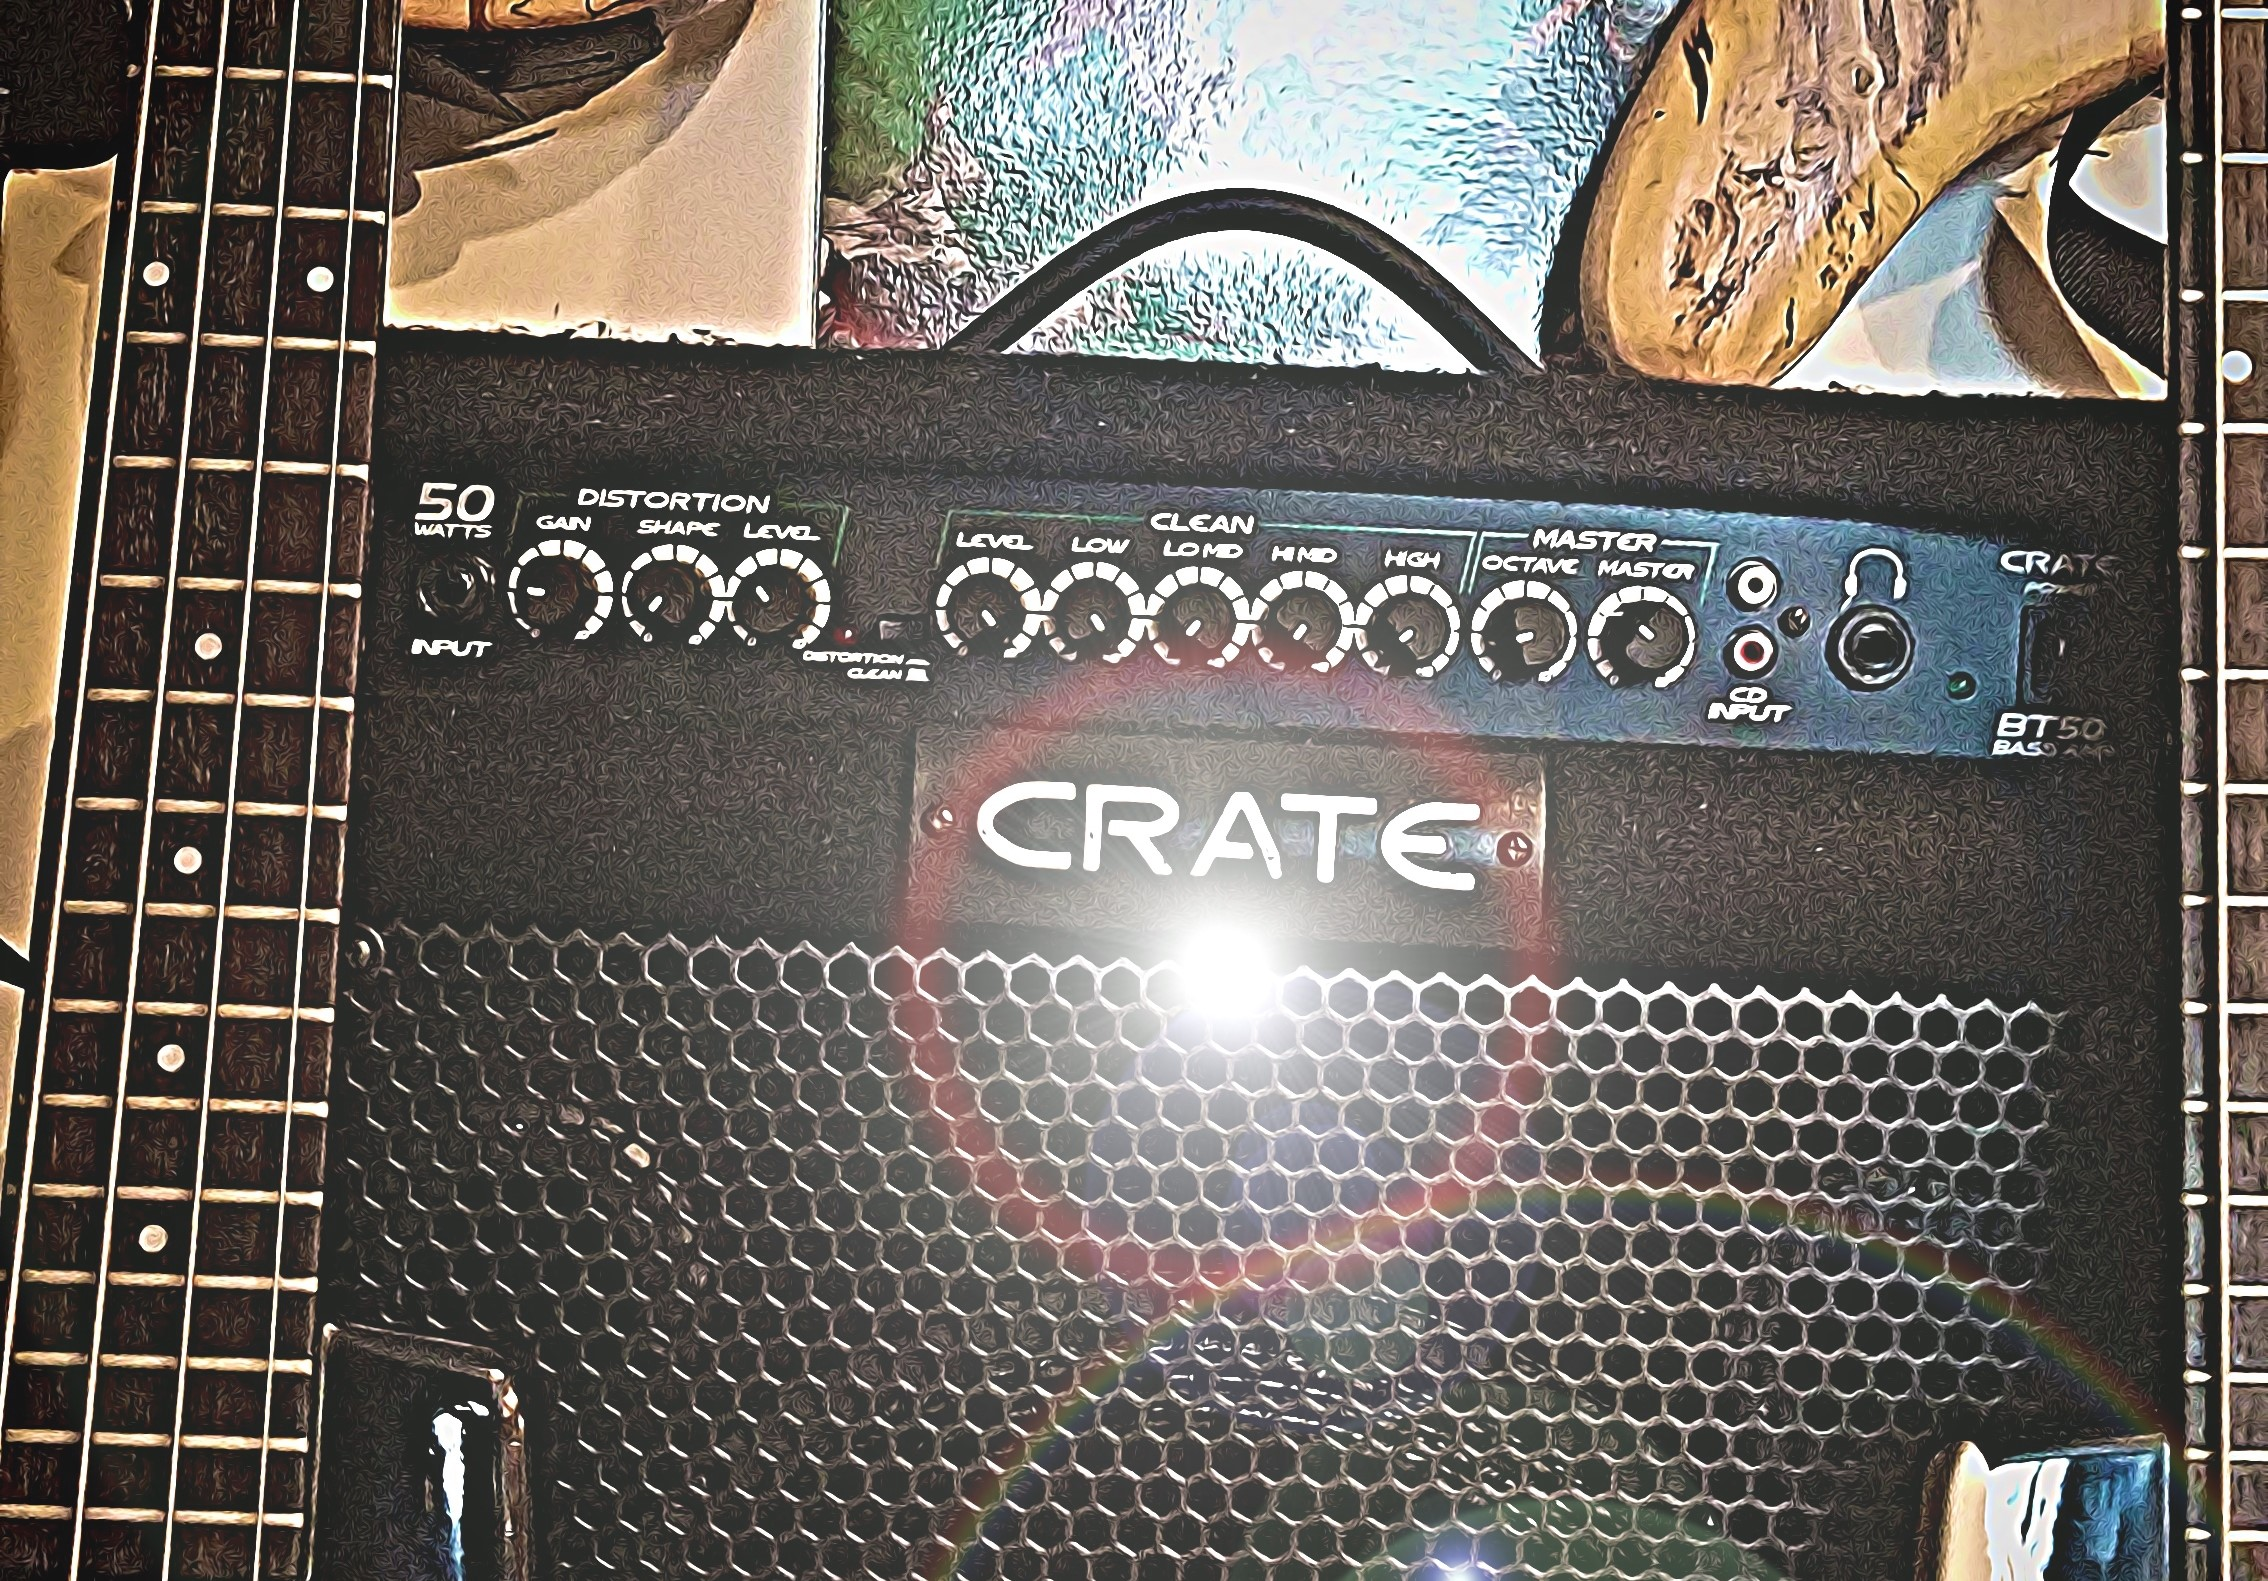 Crate Bass amp Close up